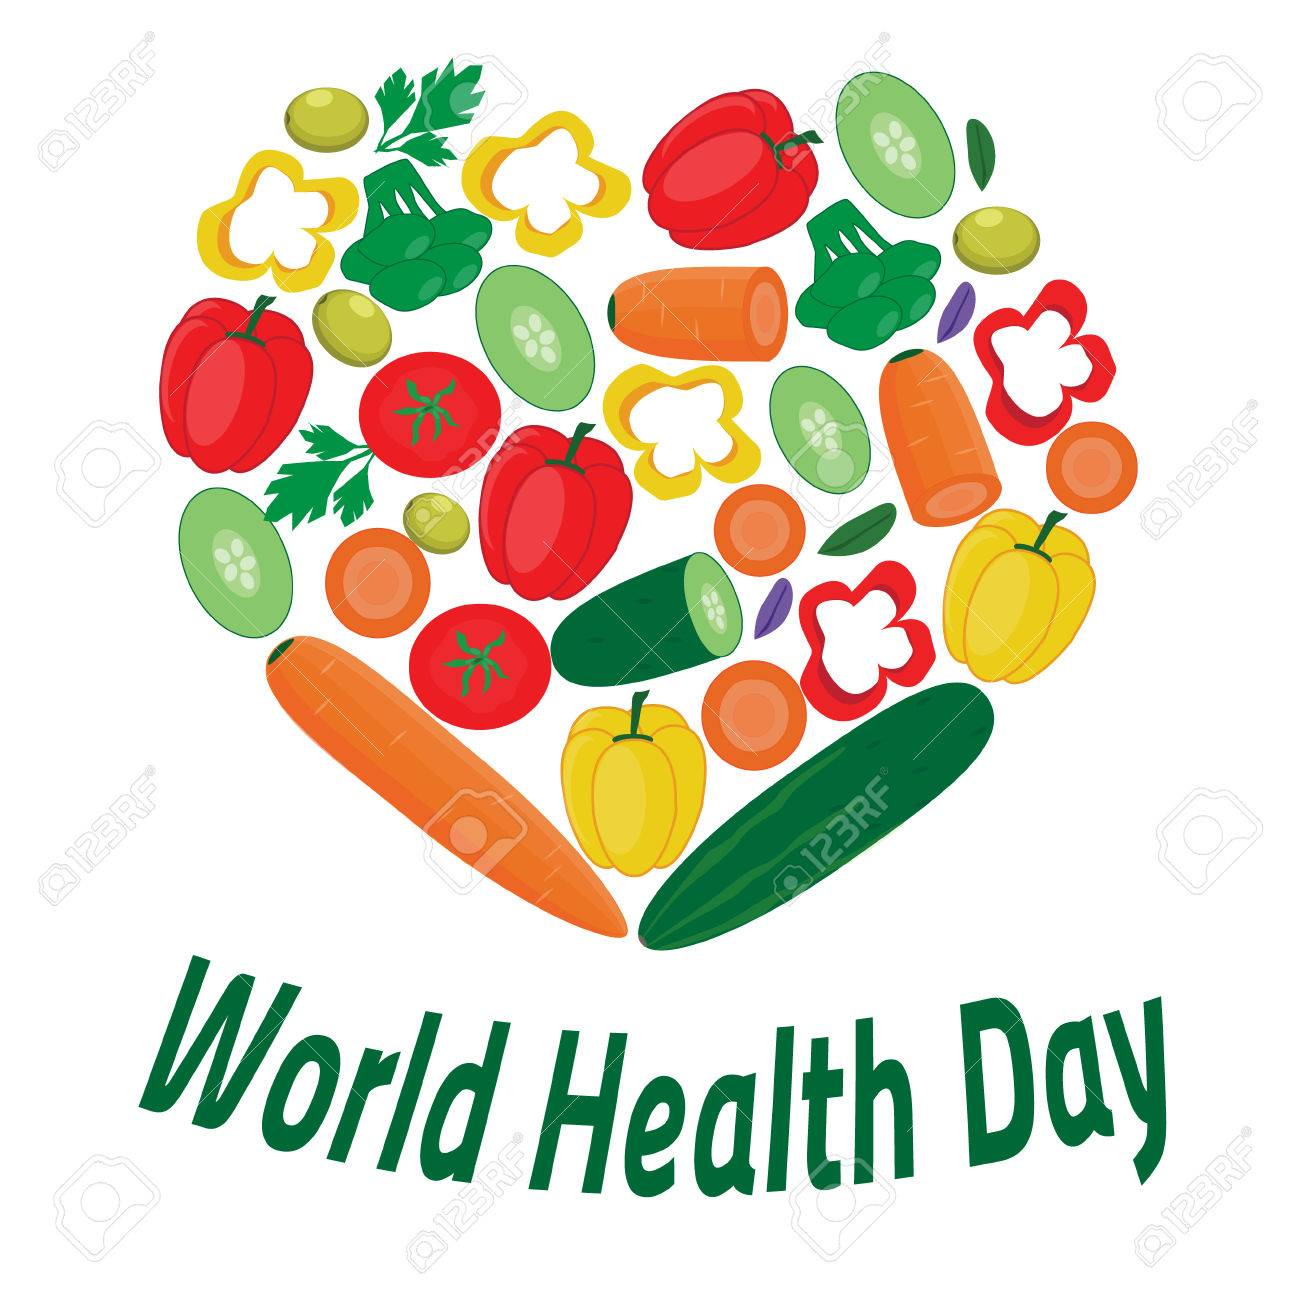 World Health Day Banner Hearth From Vegetables Royalty Free Cliparts Vectors And Stock Illustration Image 74122285